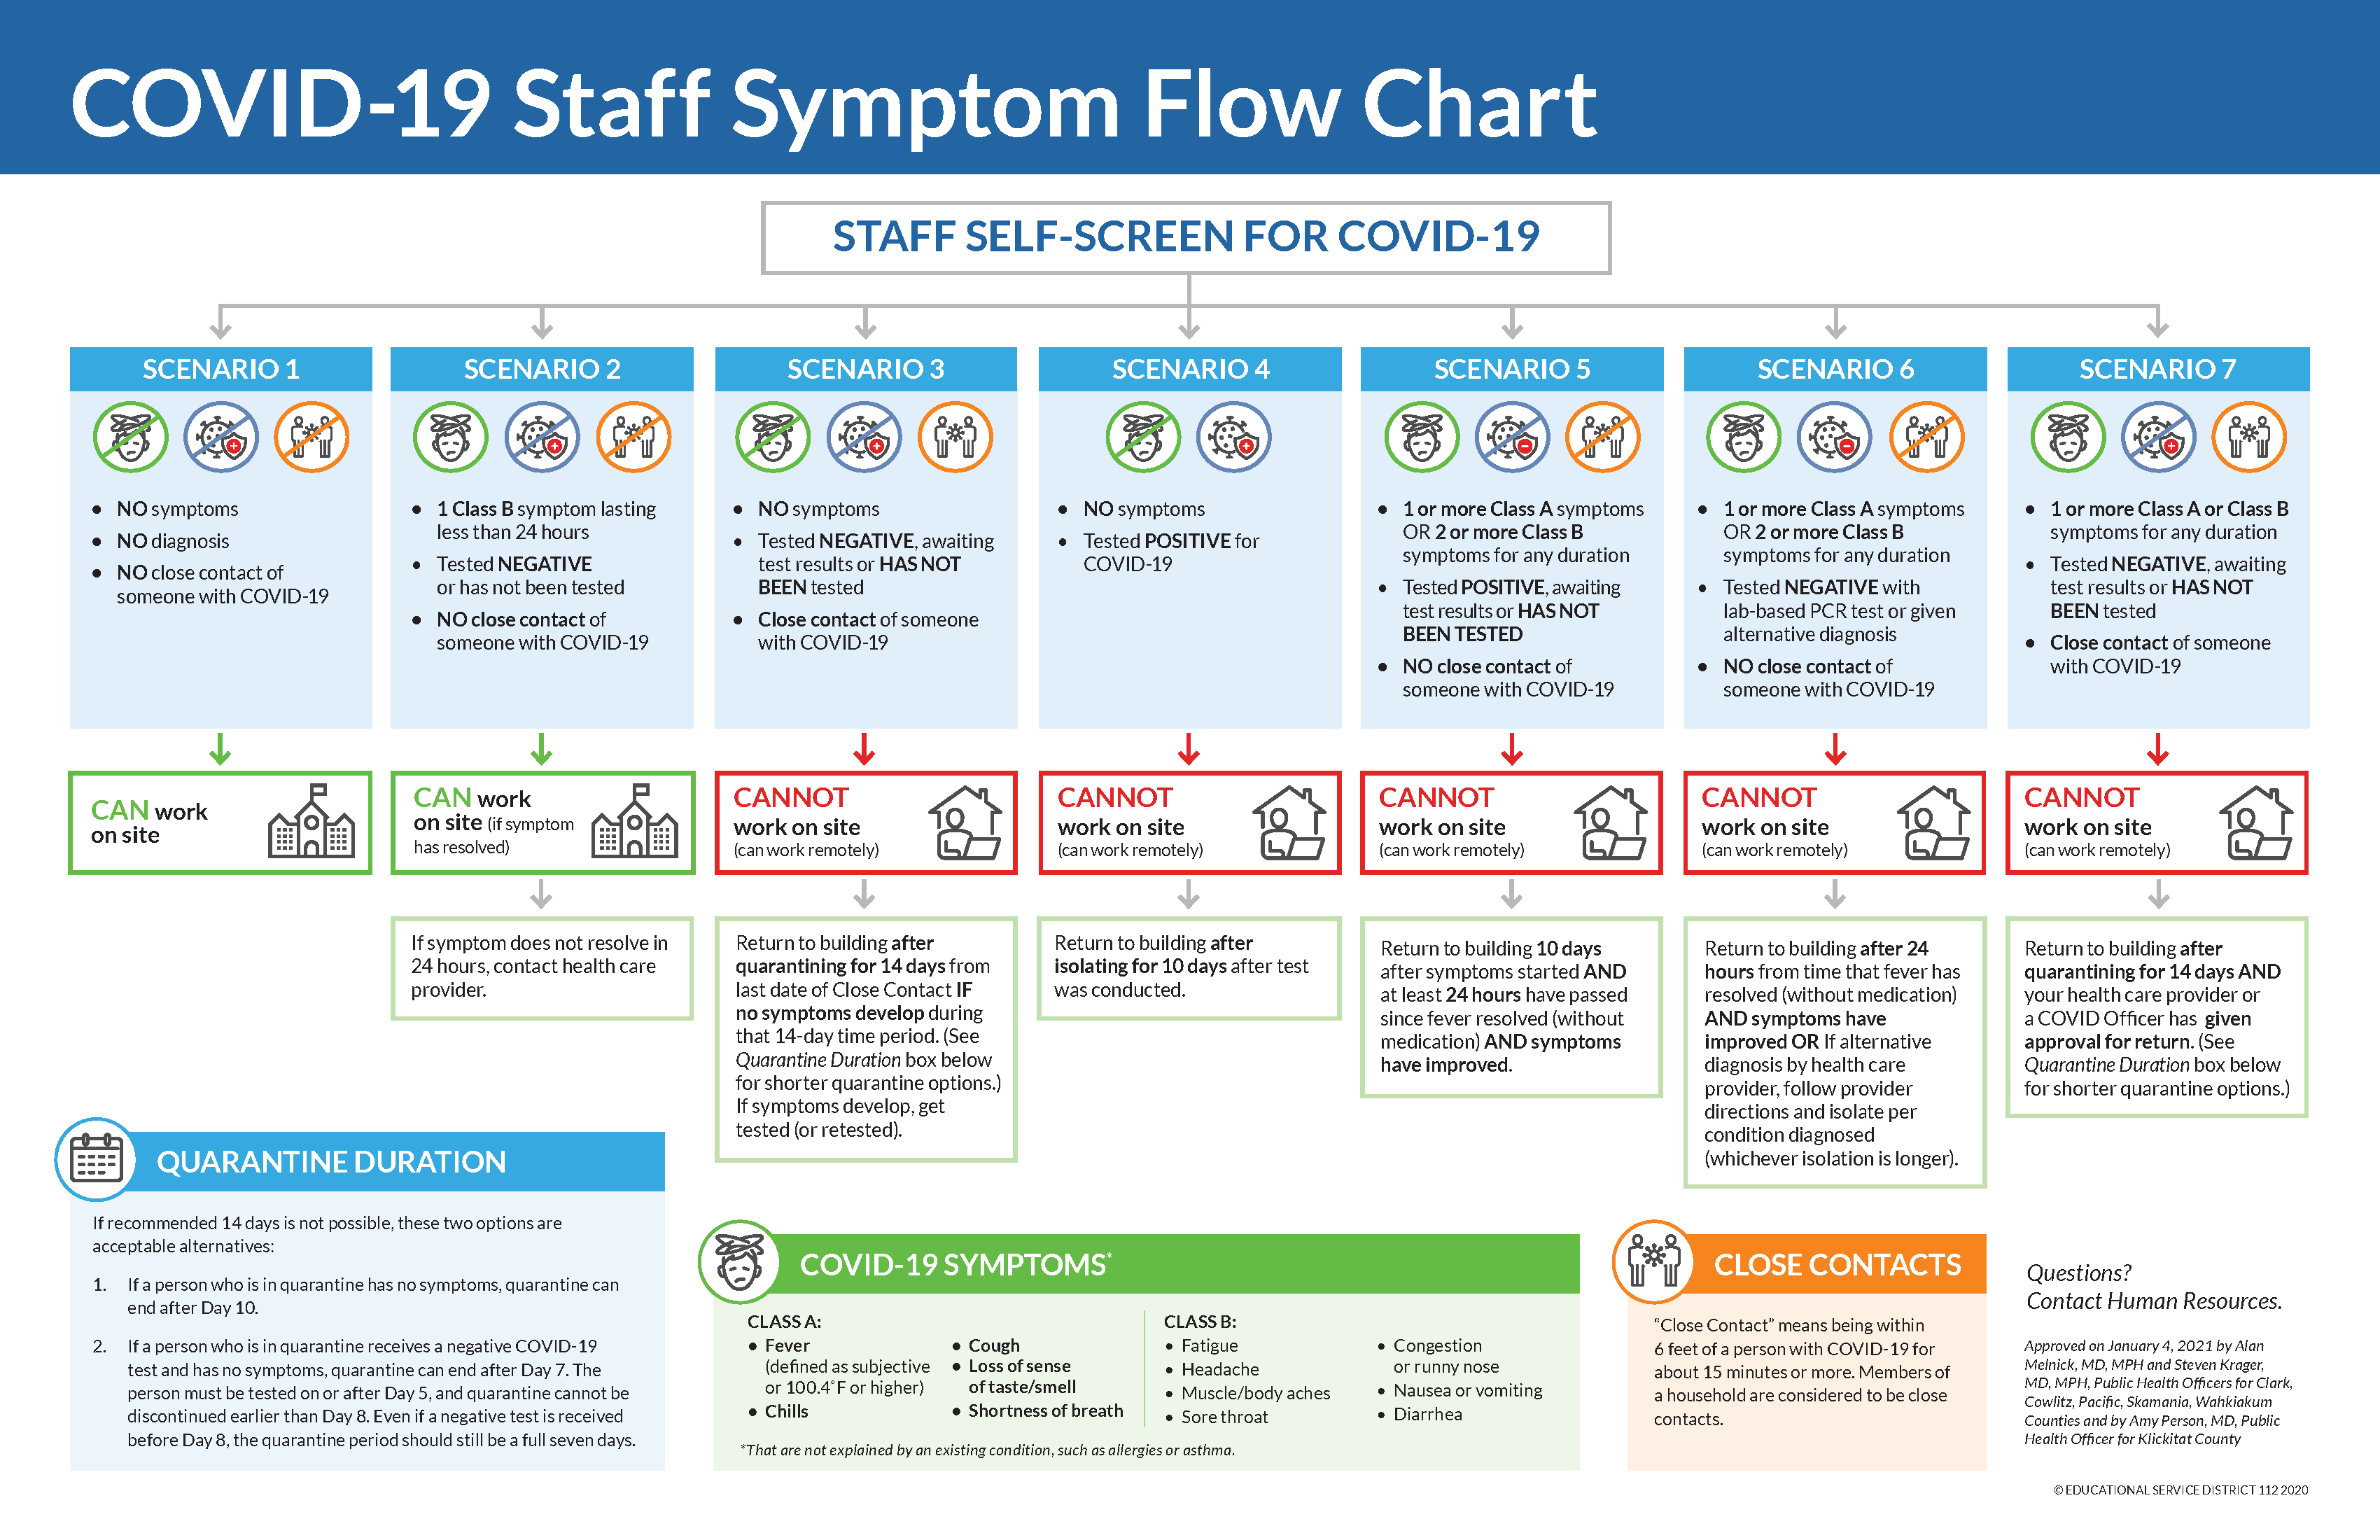 Flow chart for staff from Clark County, use link for accessible version